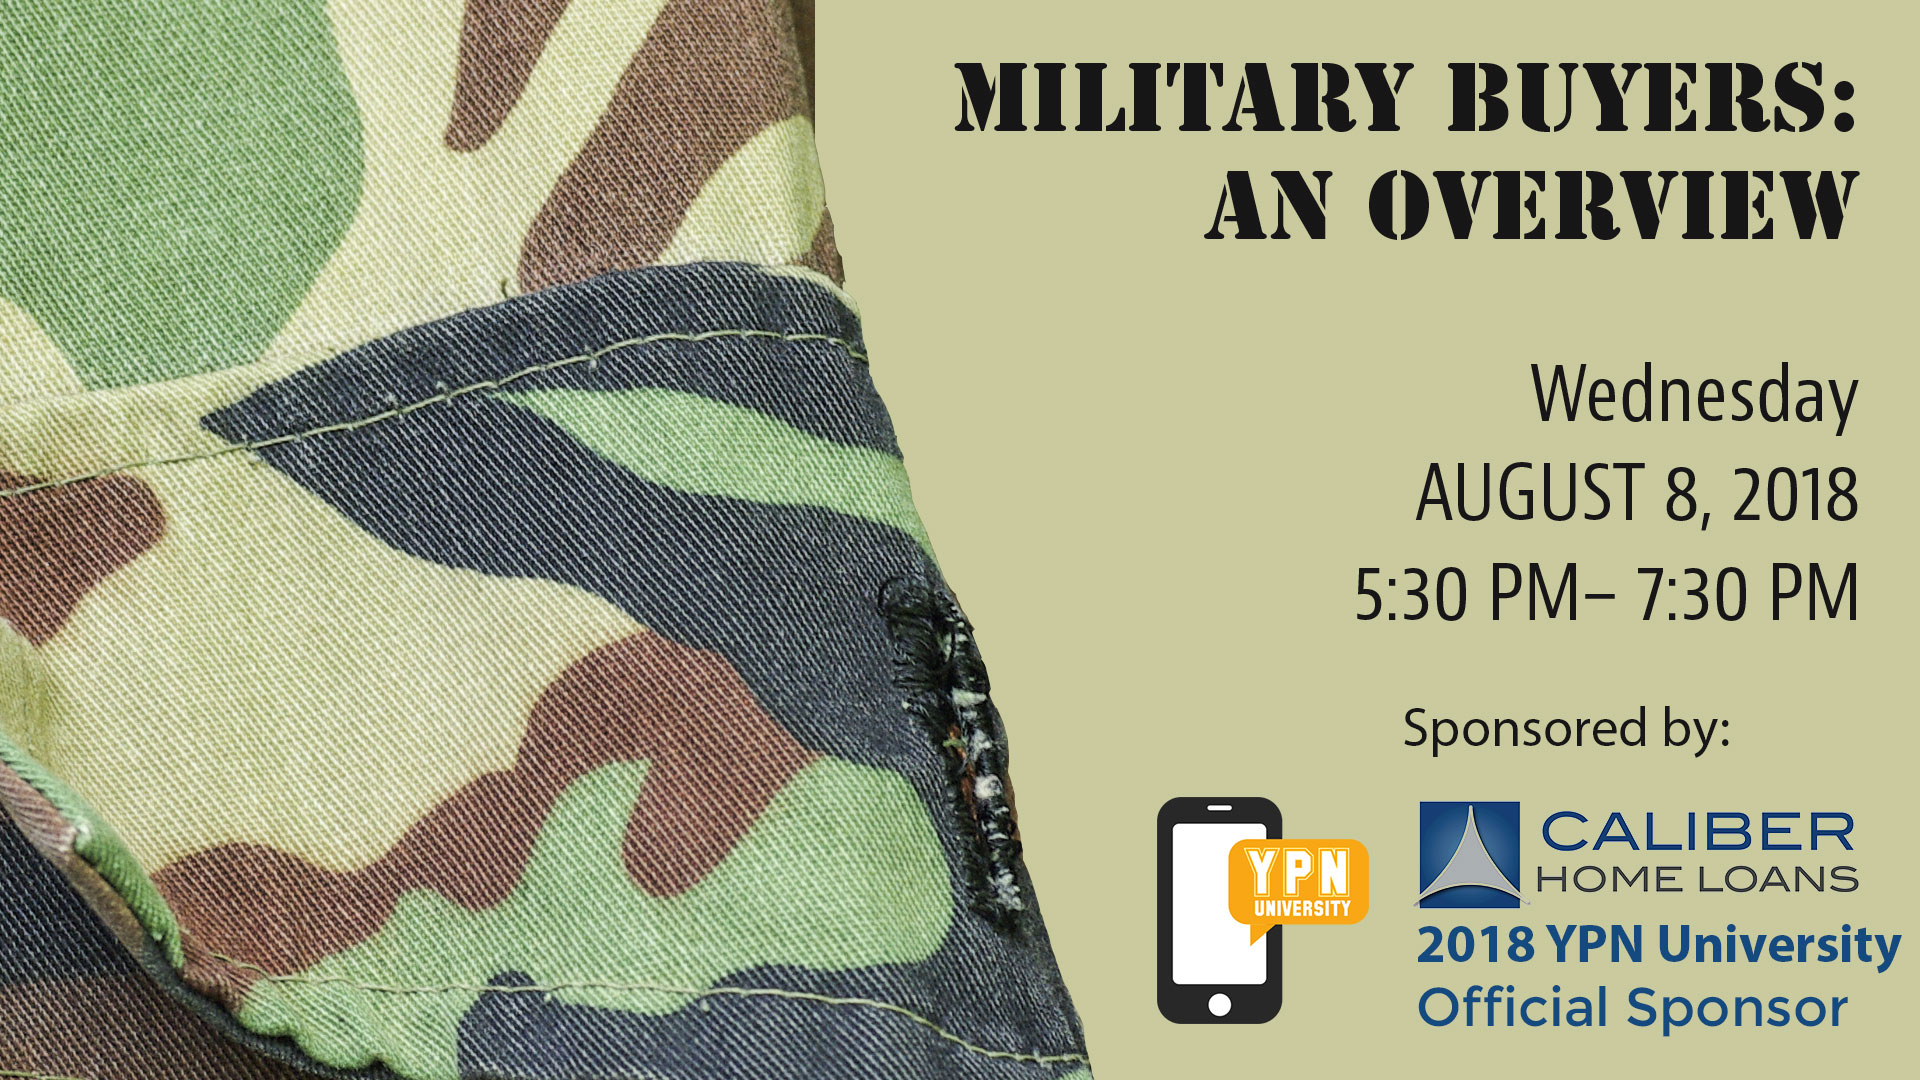 Military Buyers: An Overview, Aug. 8